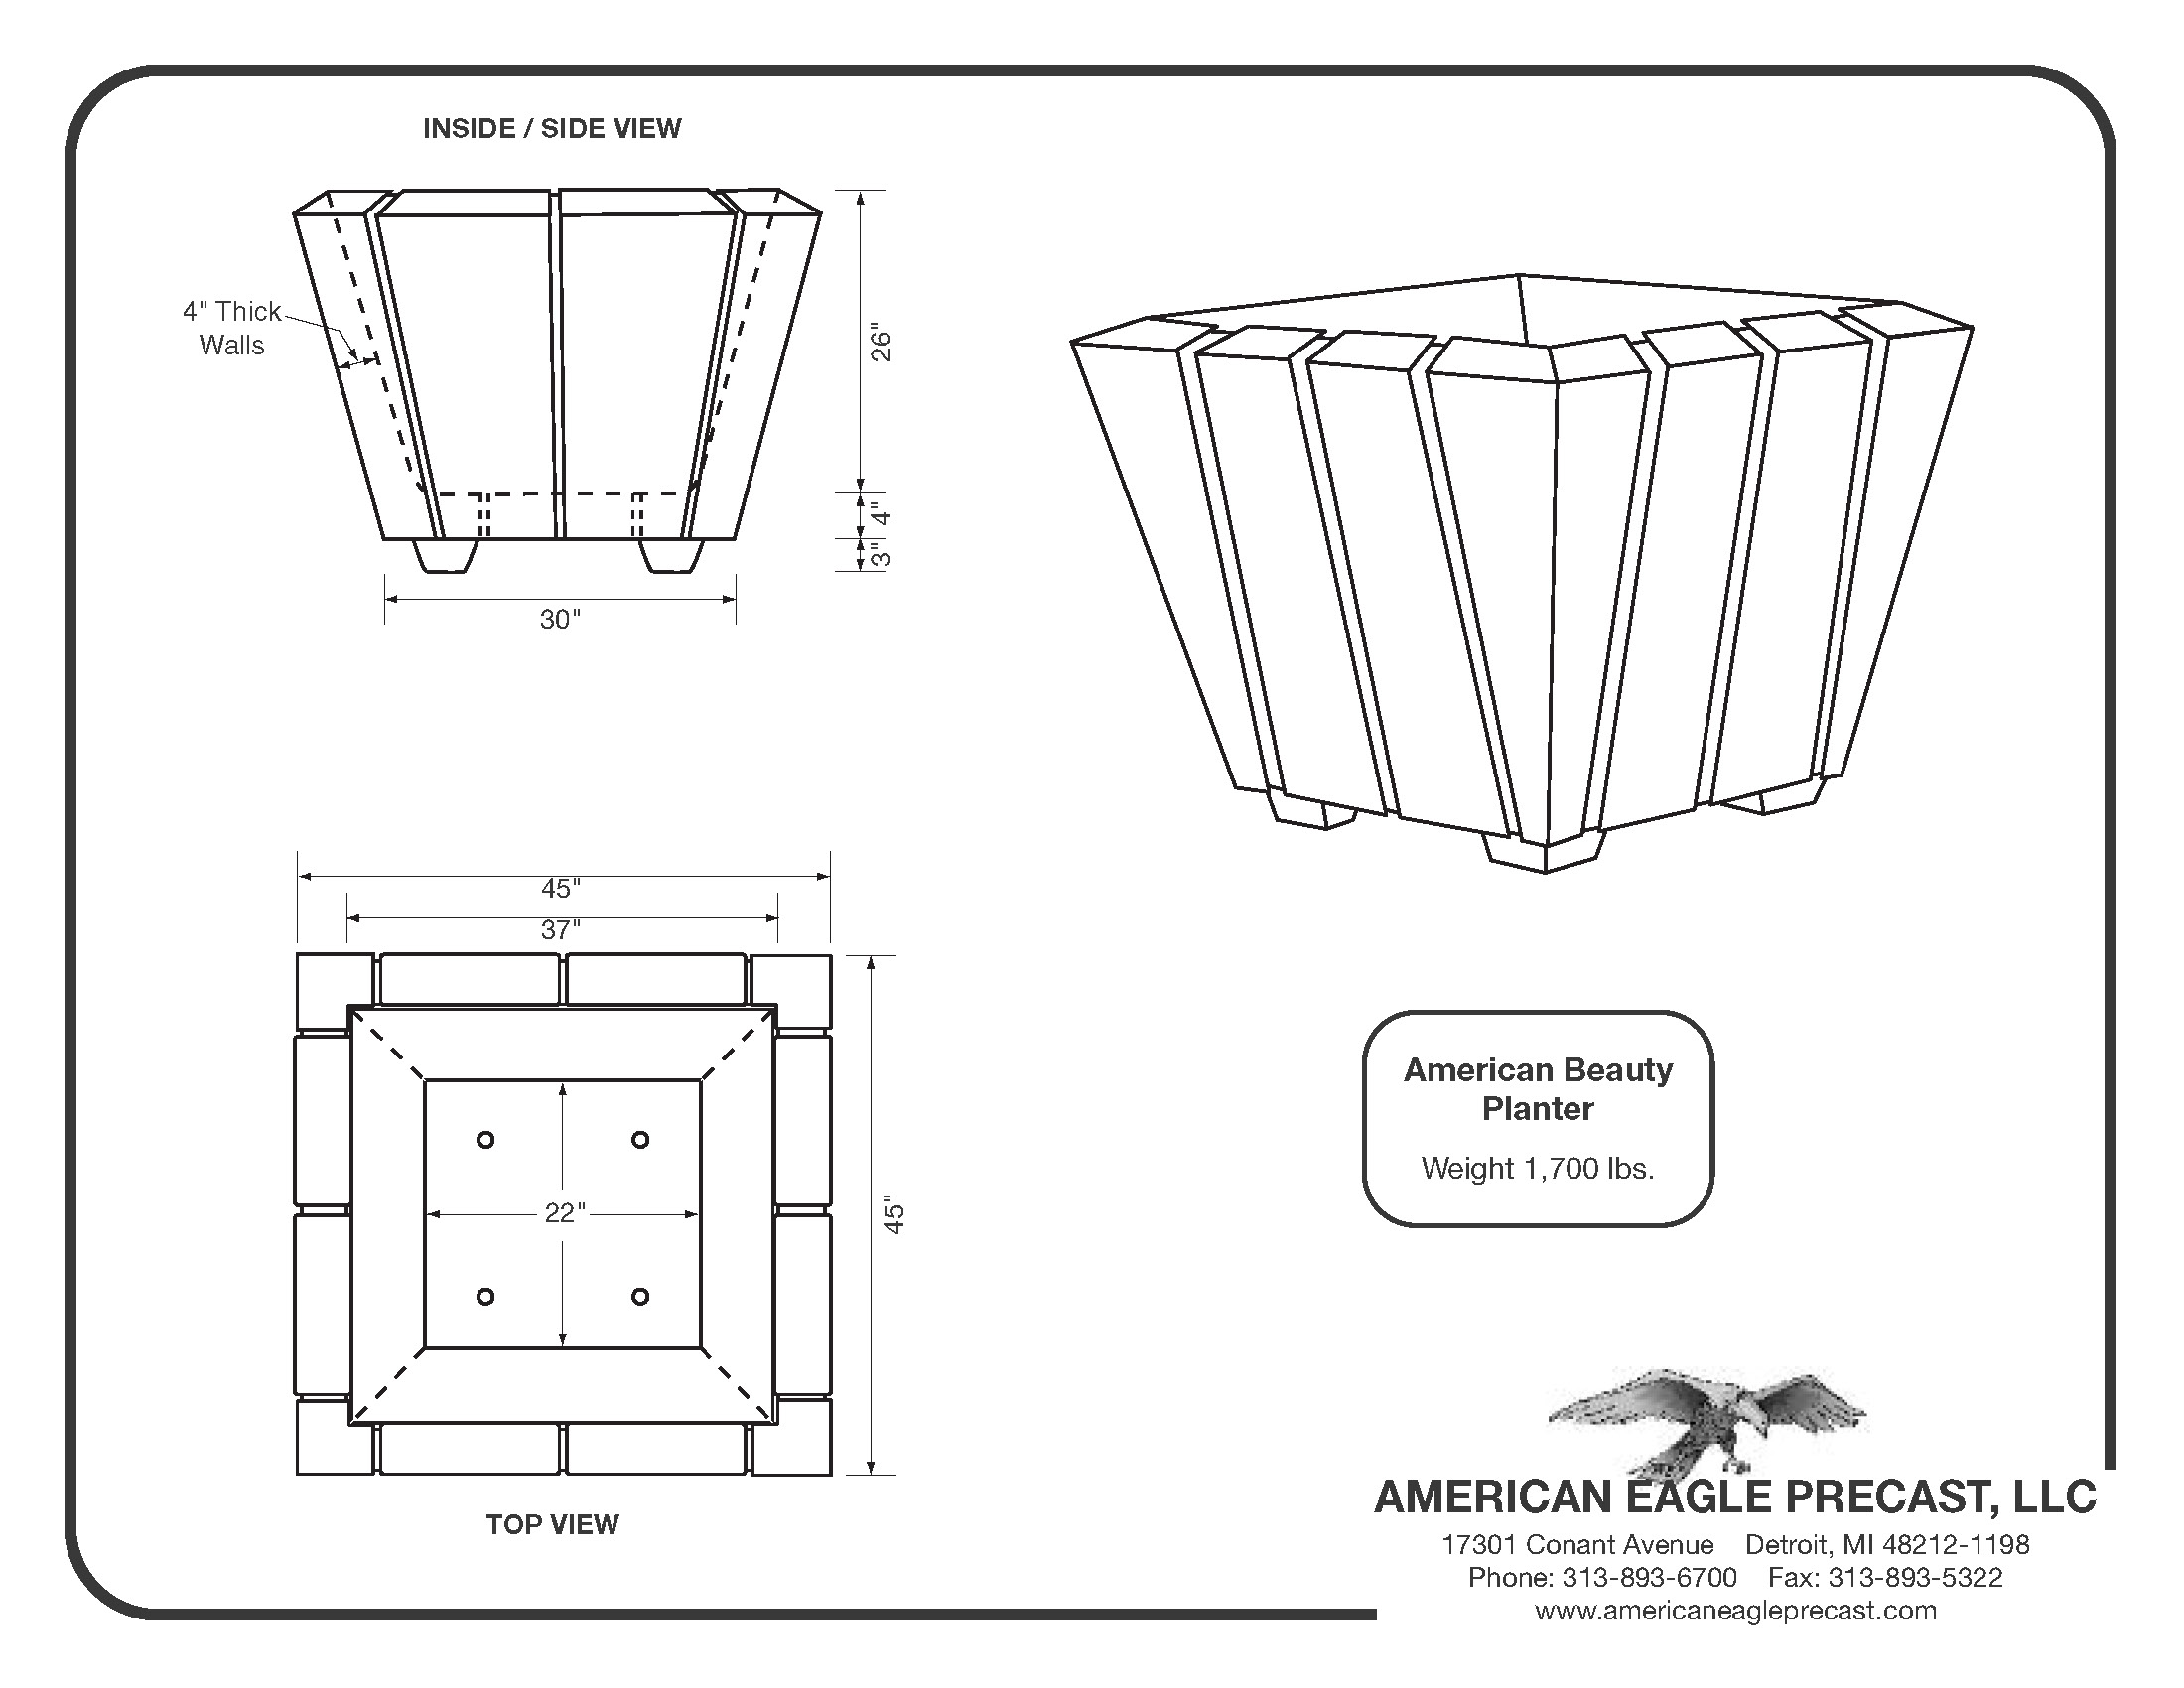 CONCRETE PRODUCTS SPEC SHEETS_Page_36.jpg